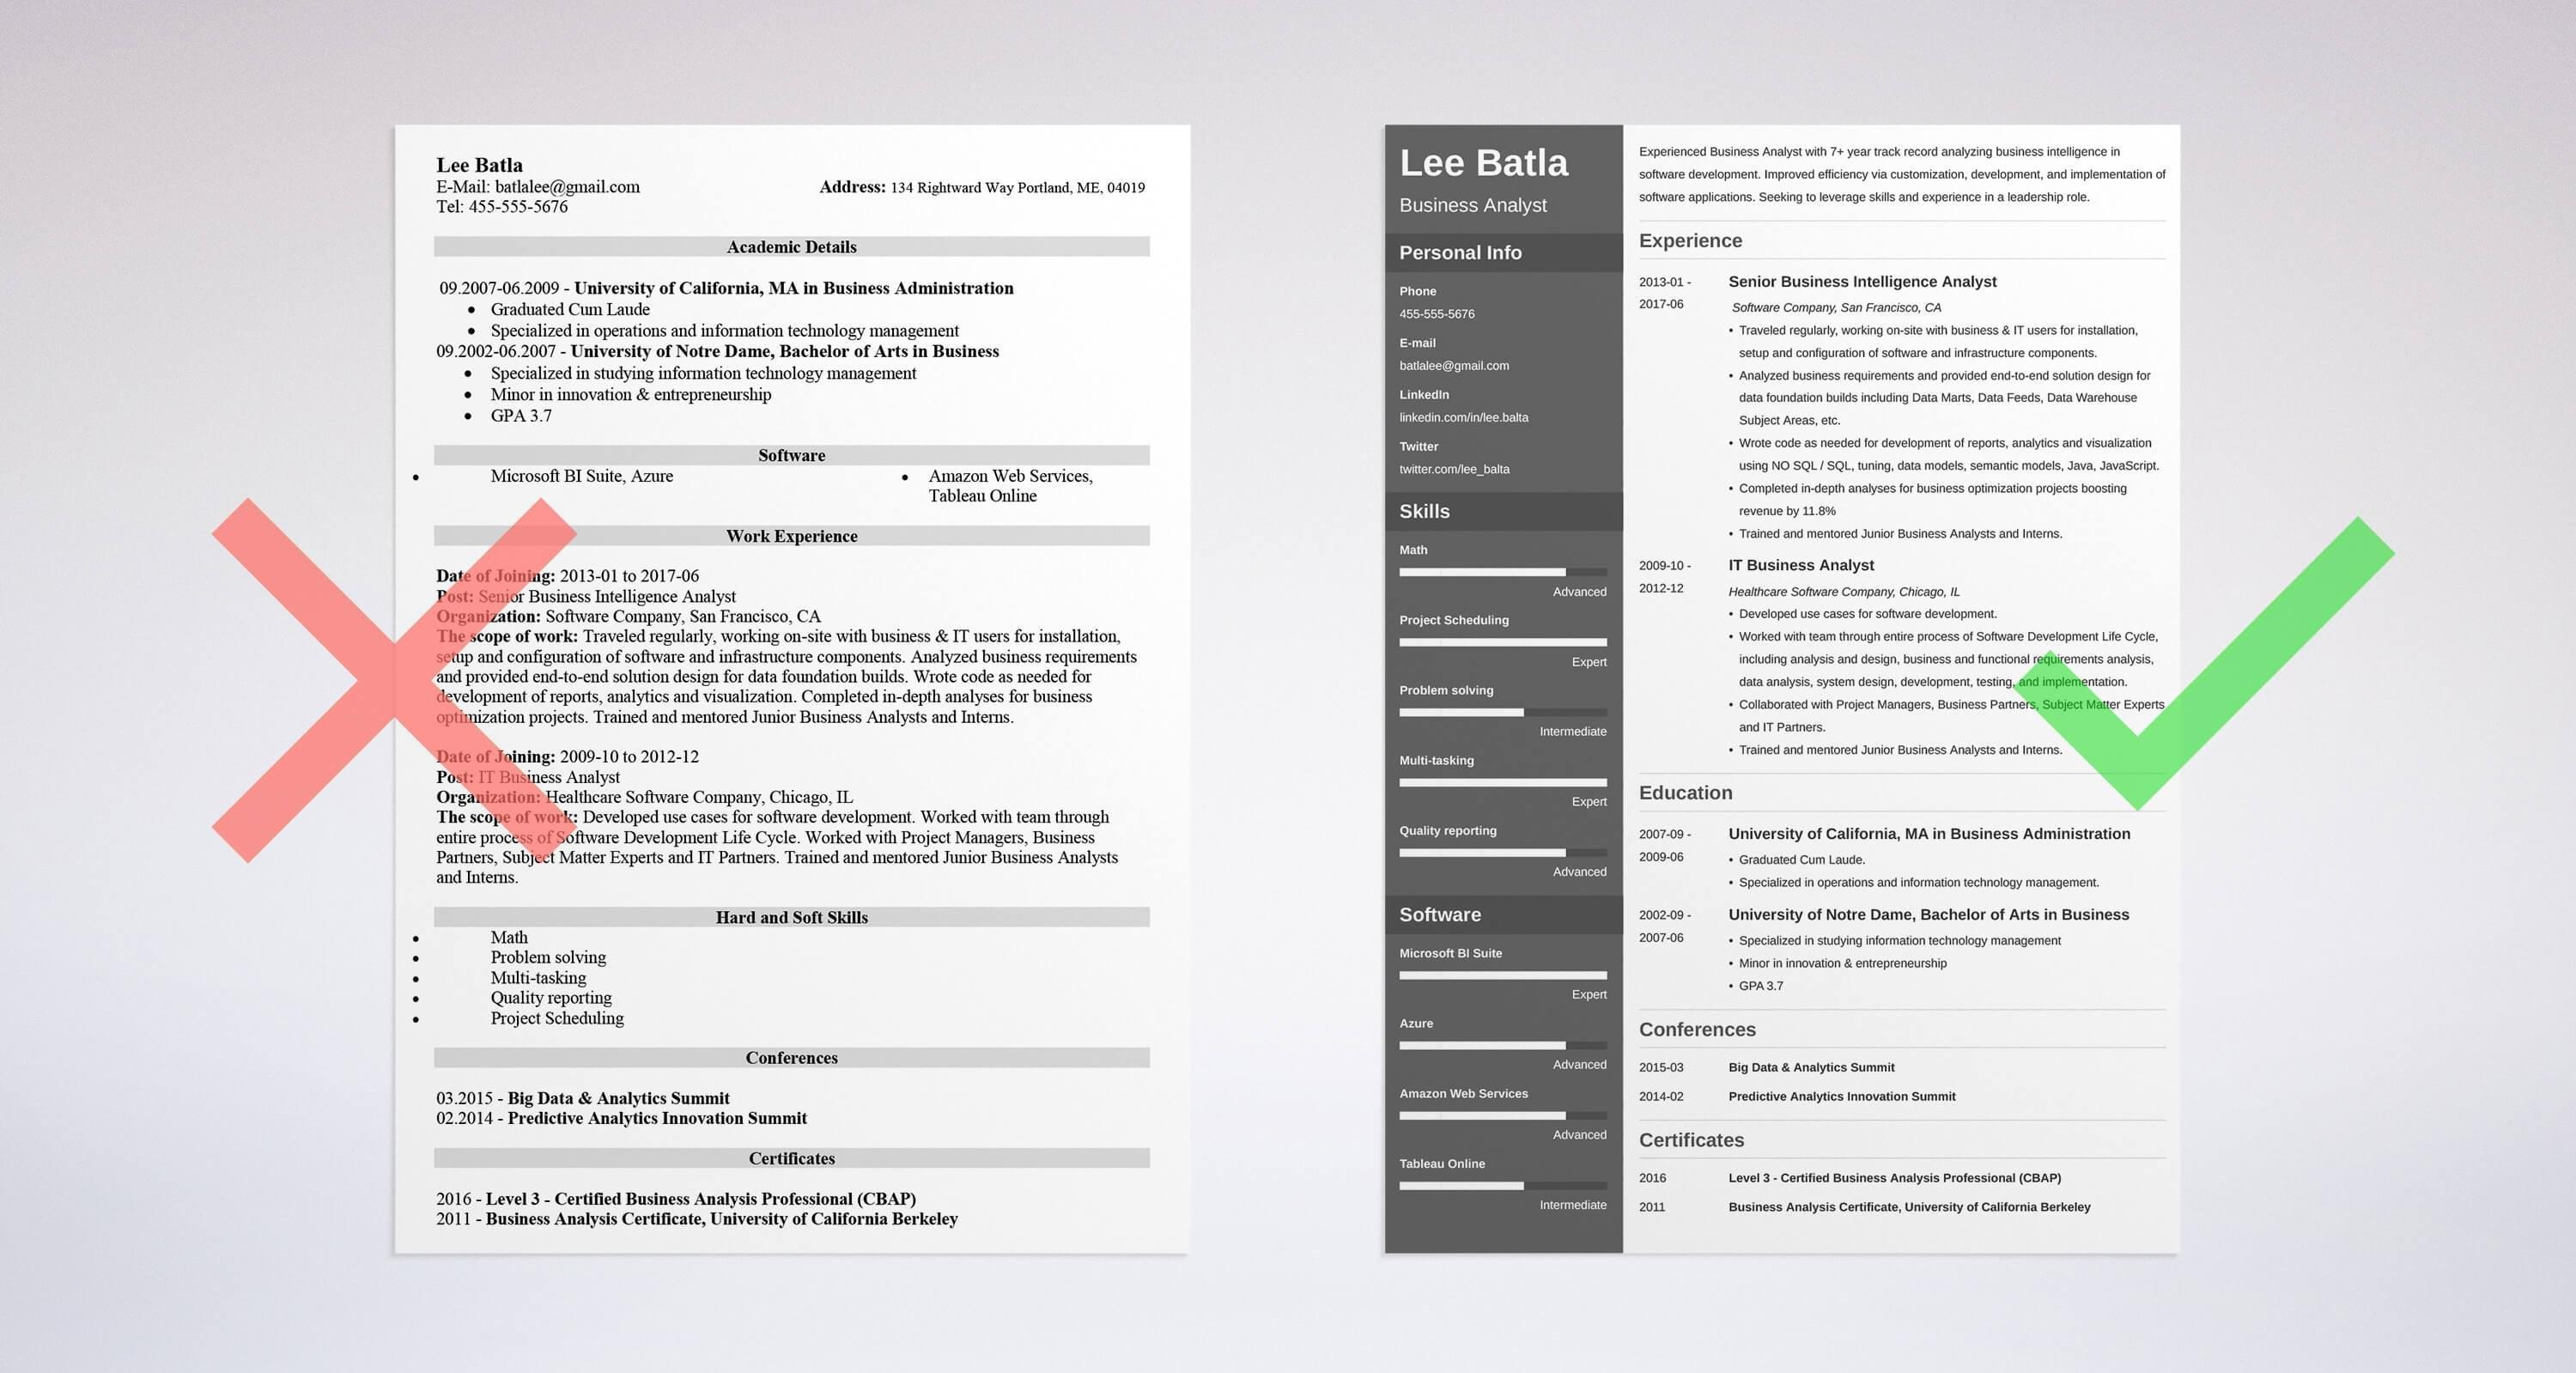 91 Cool Business Analyst Resume Examples 2018 with Pictures